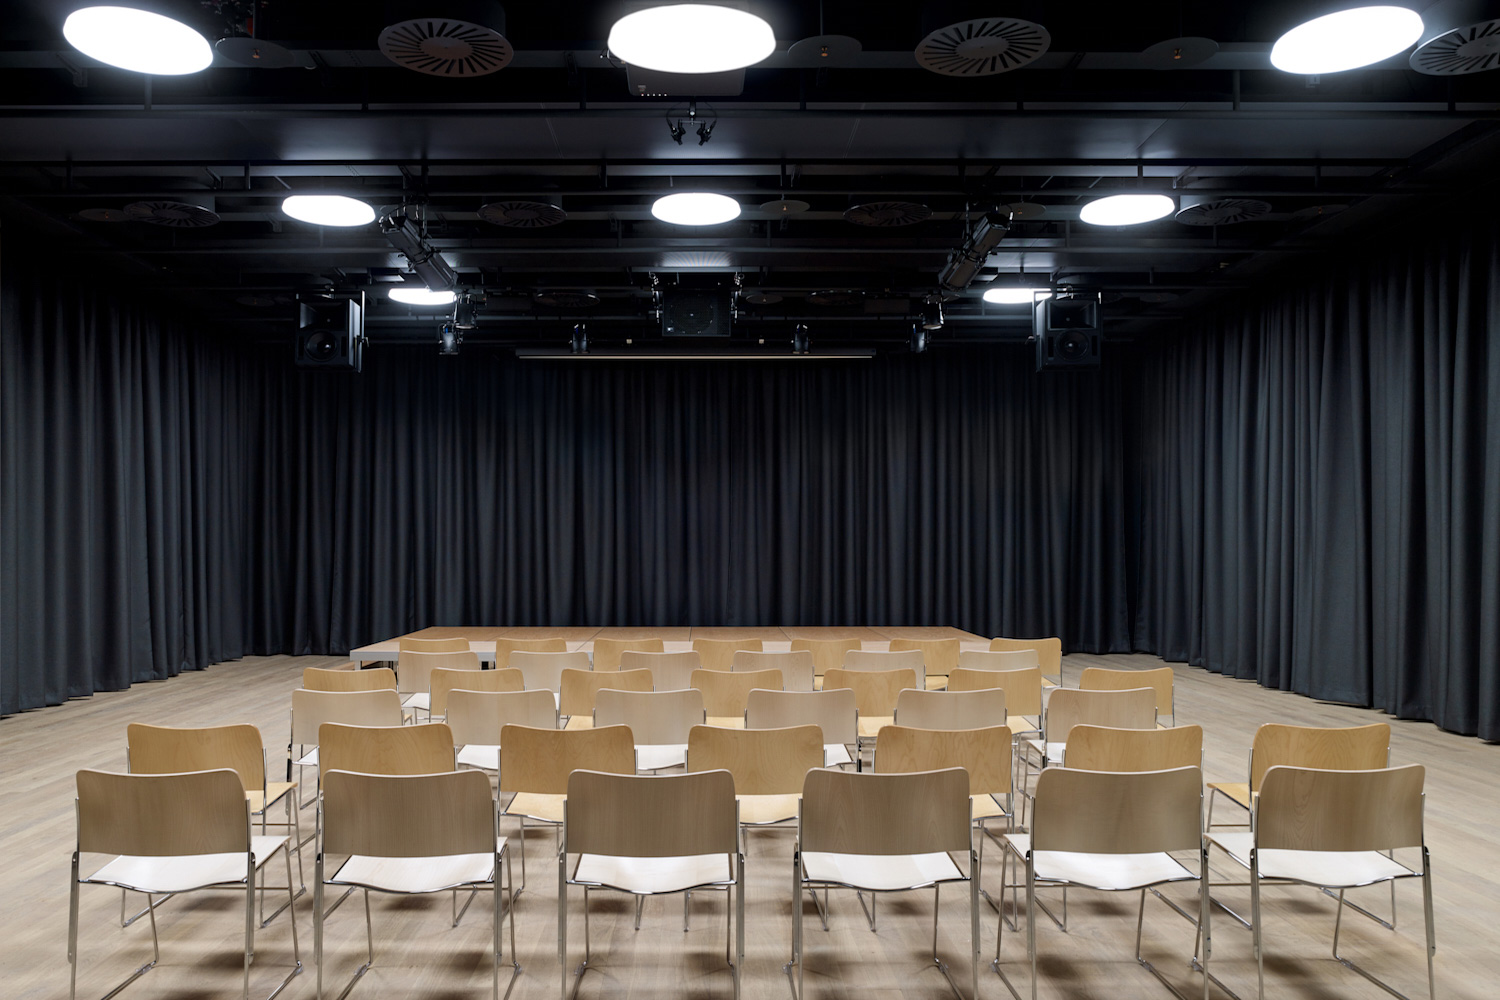 Schweizer Radio und Fernsehen broadcasting company relocated their Basel facilities and WSDG's services were retained to tune the acoustics of these rooms and ensure high-quality working areas for SRF.